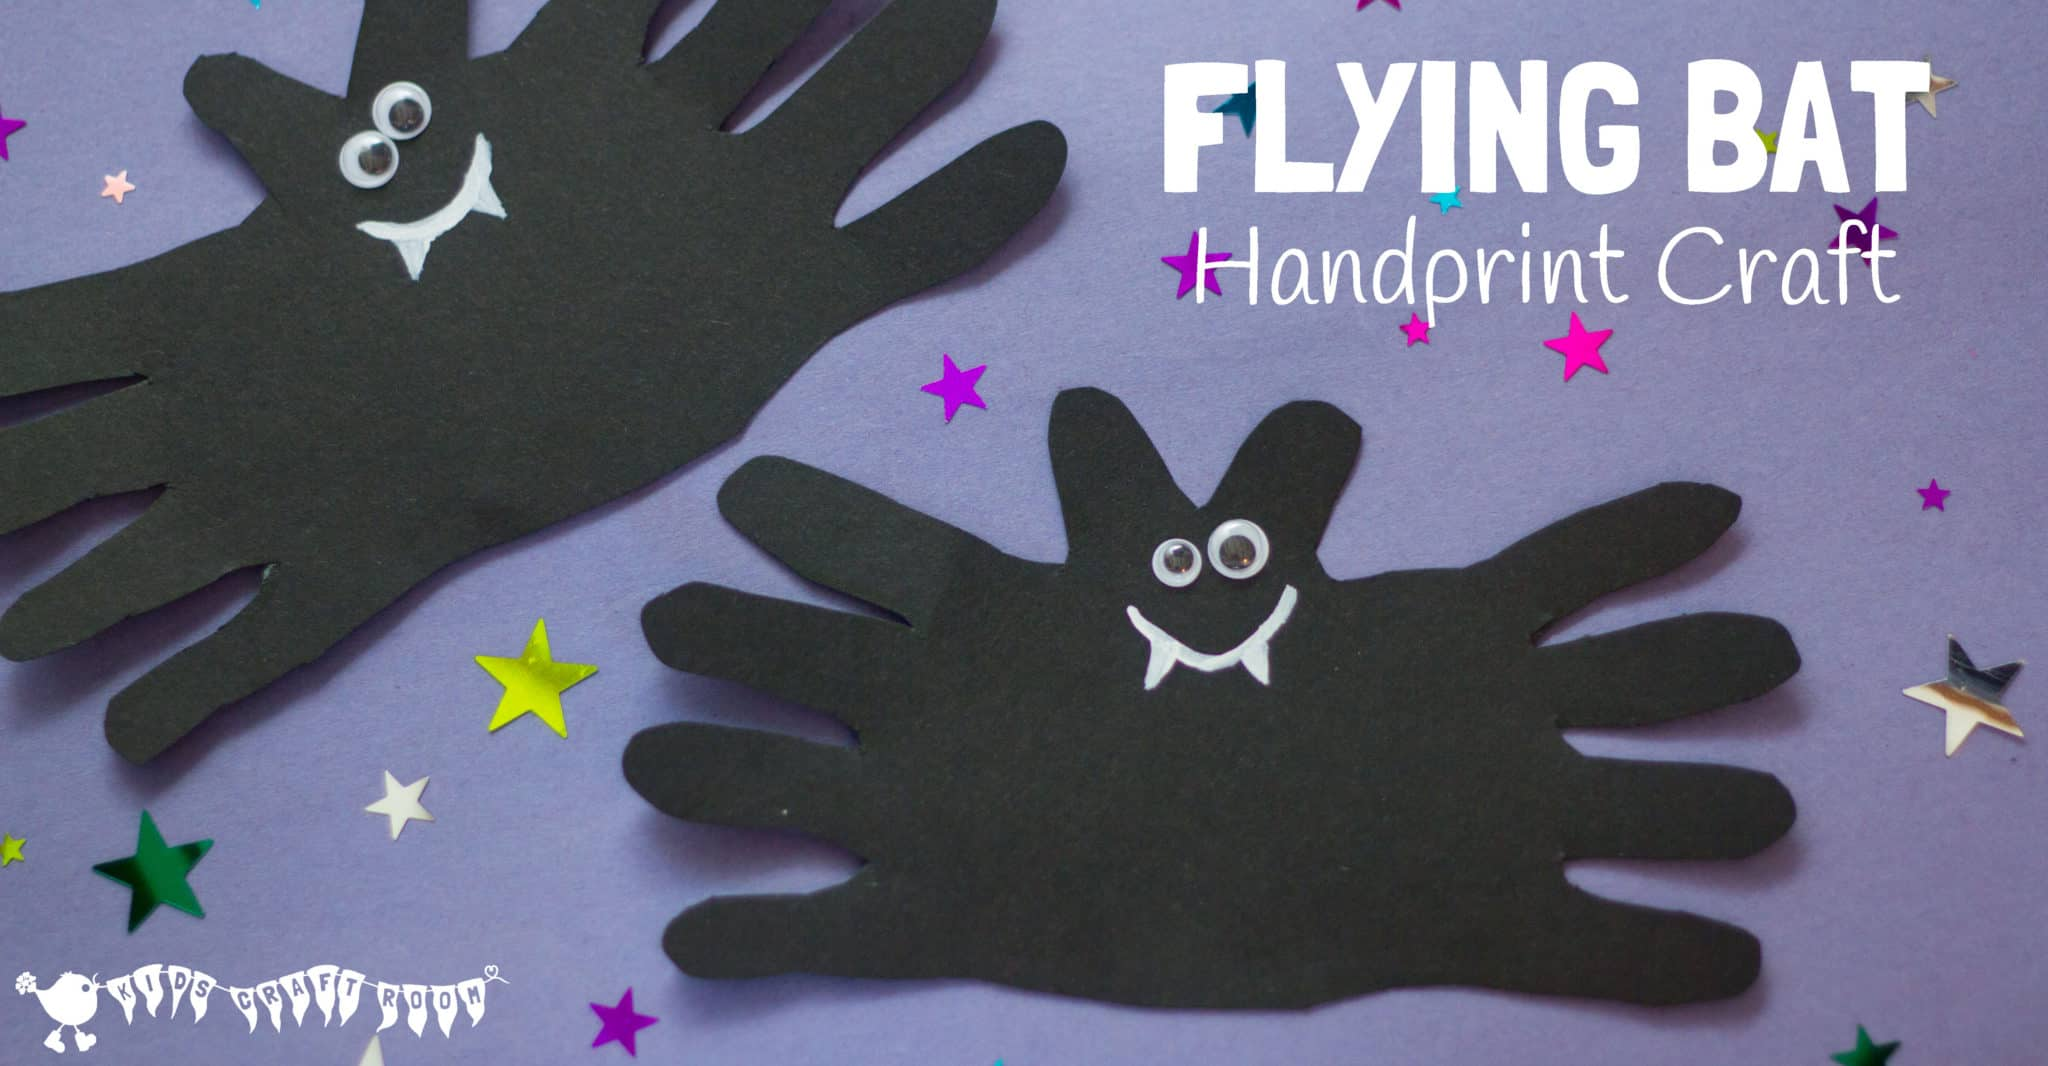 Flying bat handprint craft